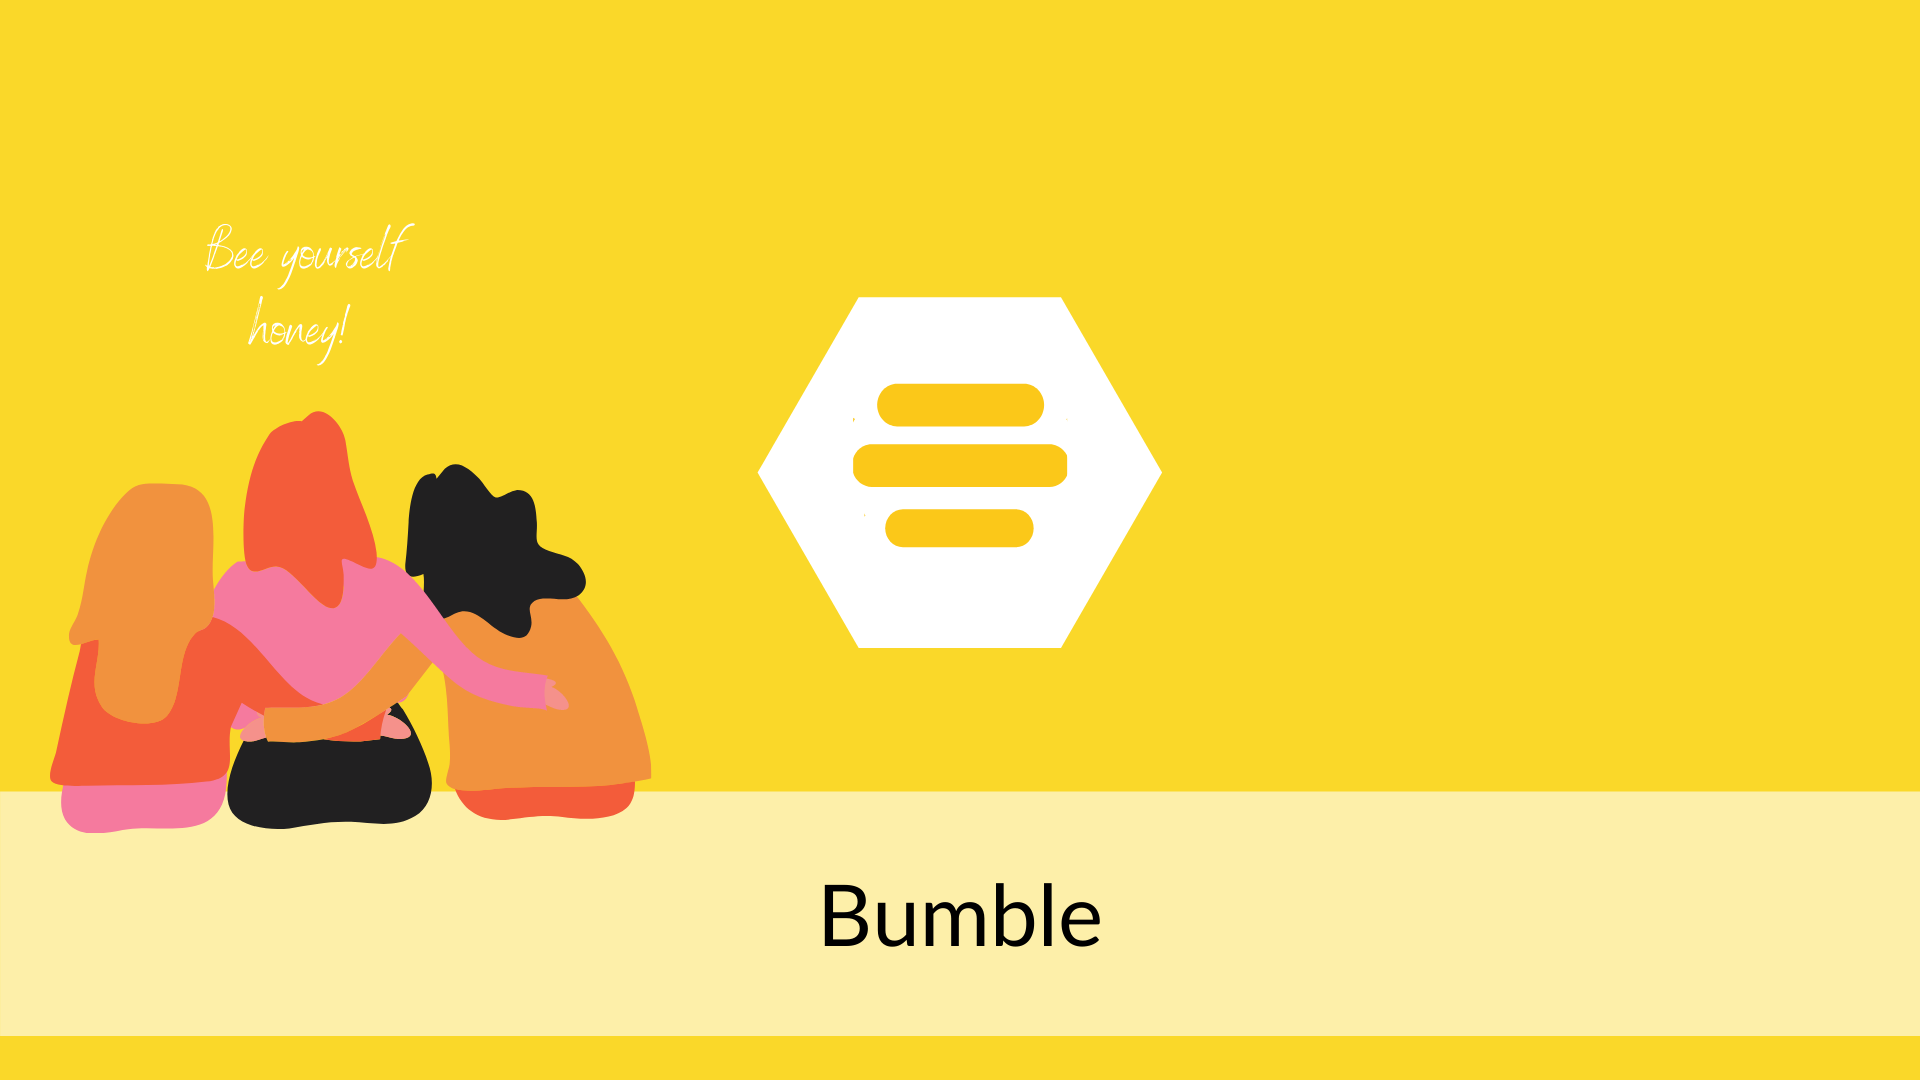 Bumble - dating application for women